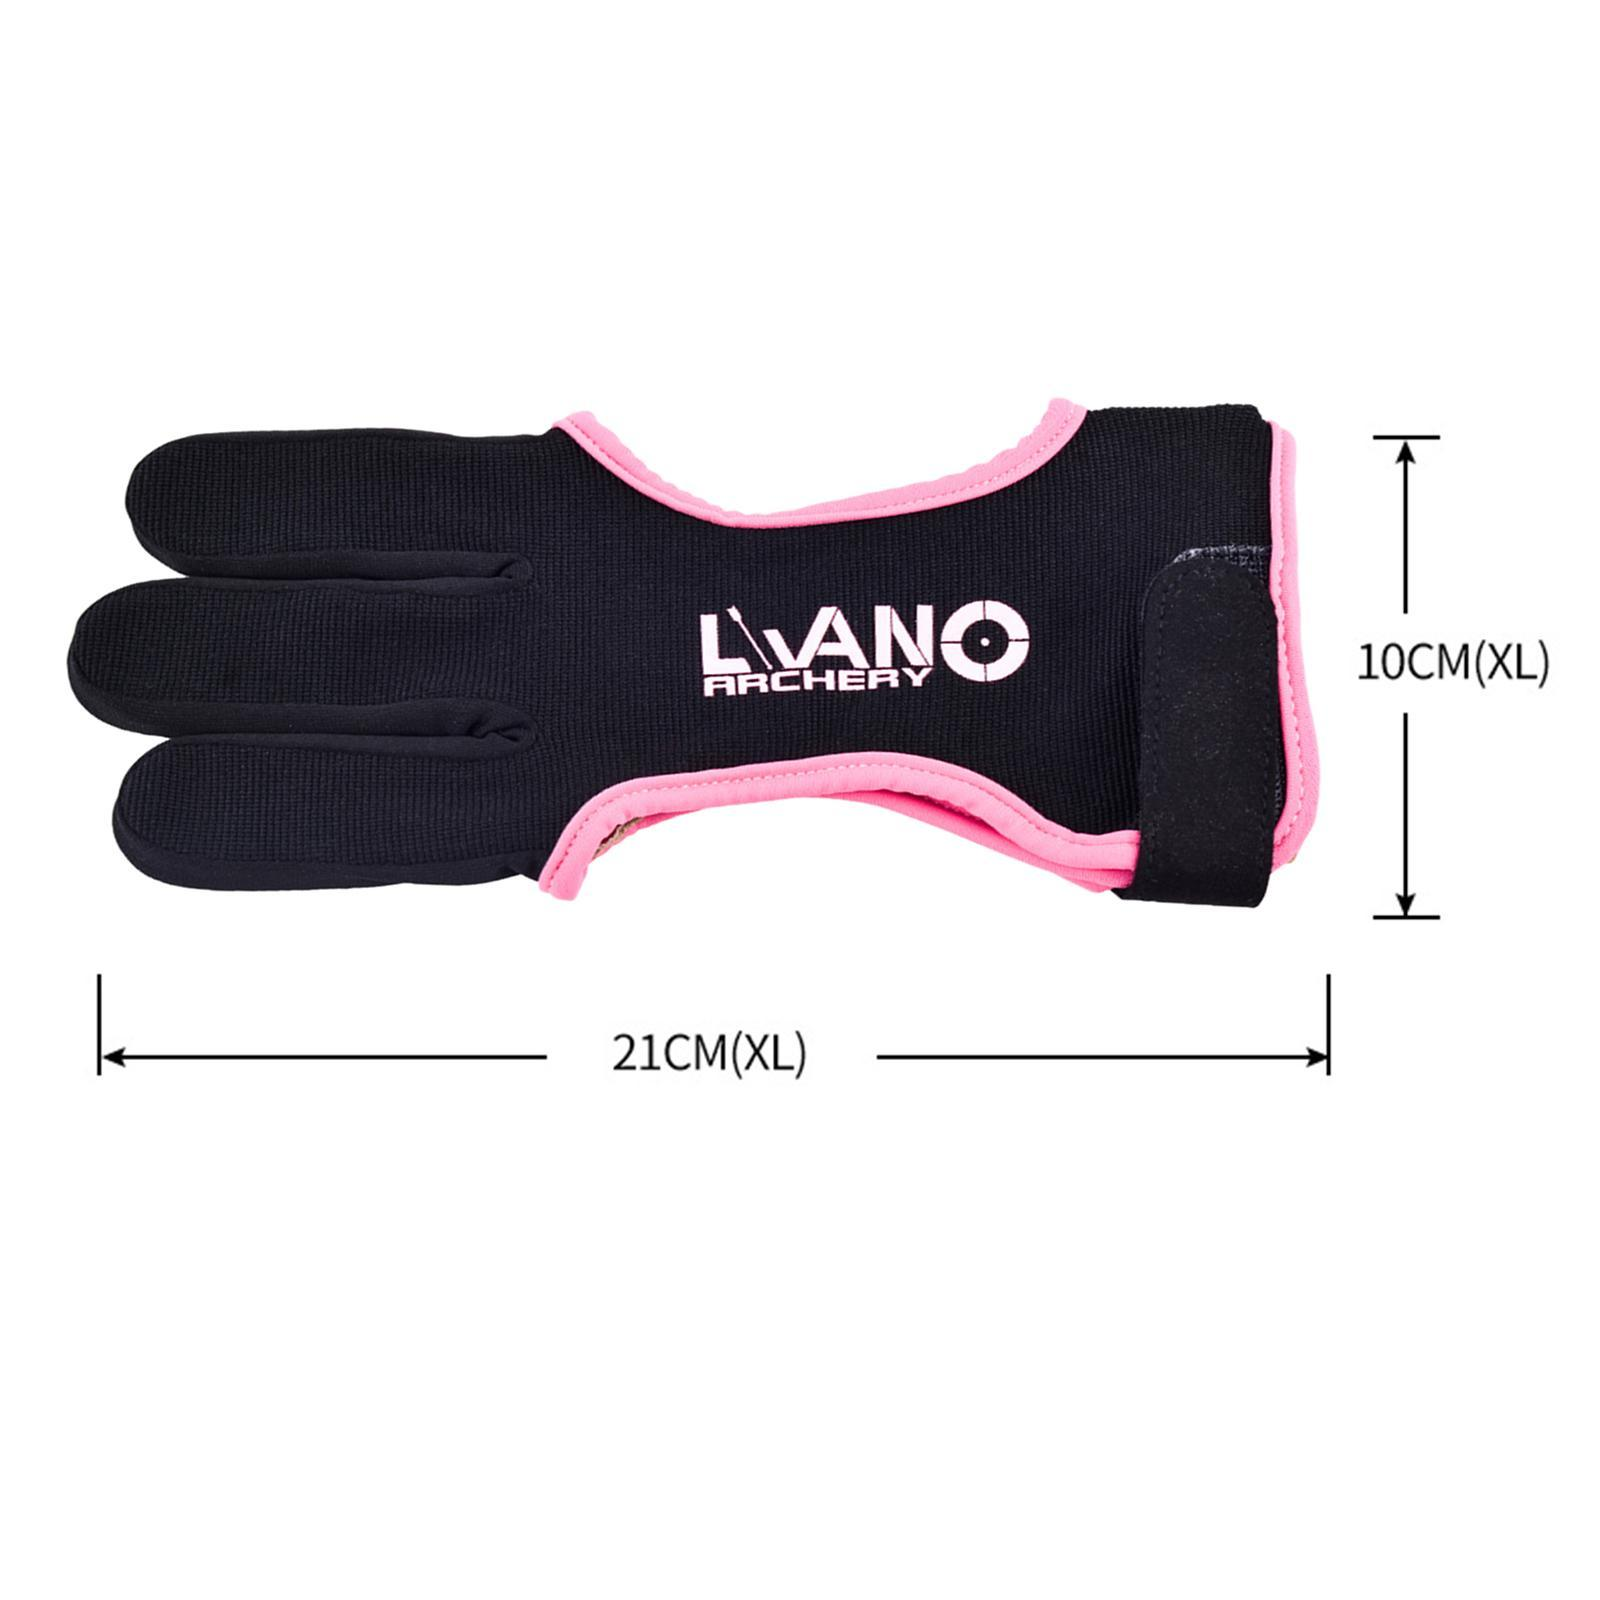 thumbnail 36 - Archery Glove for Recurve & Compound Bow 3 Finger Guard for Women Men Youth